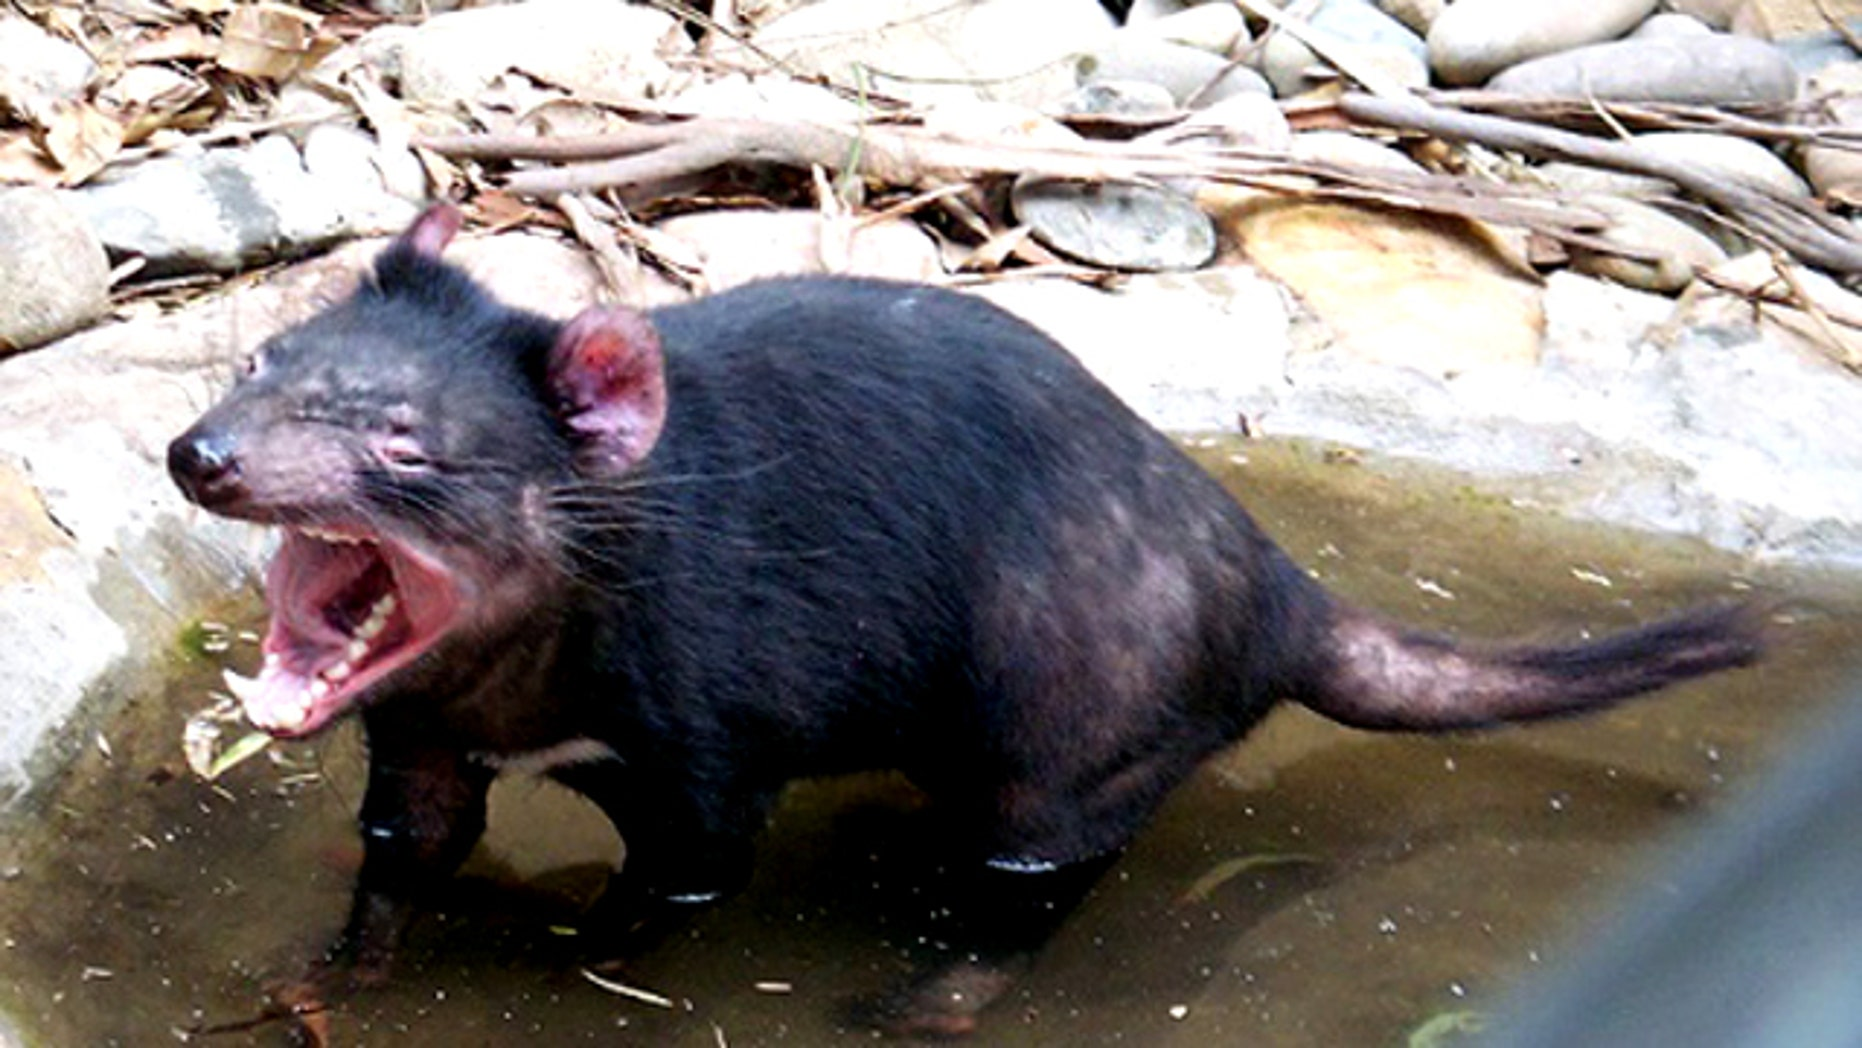 The Tasmanian devil is characterised by a stocky muscular build, strong odor, loud and disturbing screech, keen sense of smell, and a well-known ferocity when feeding.